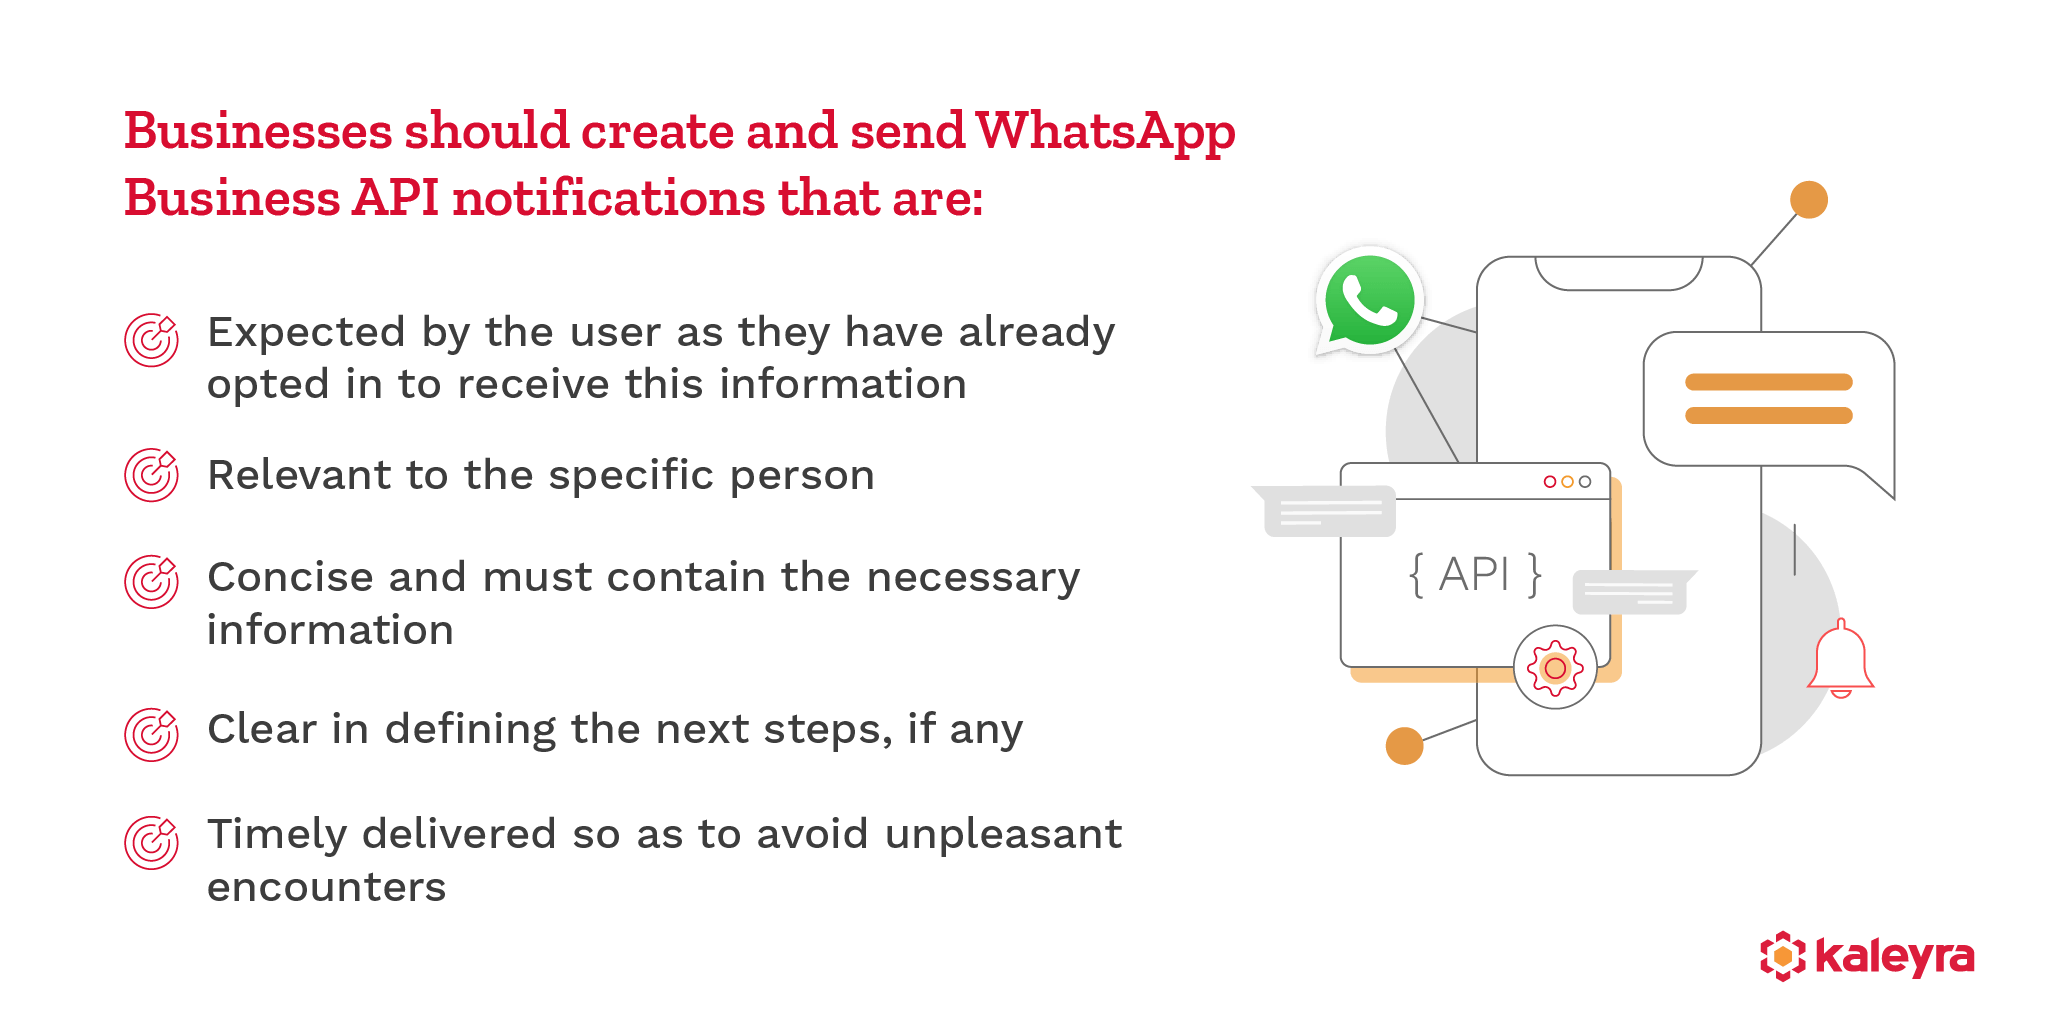 Best Practices For Sending Messages With WhatsApp Business API